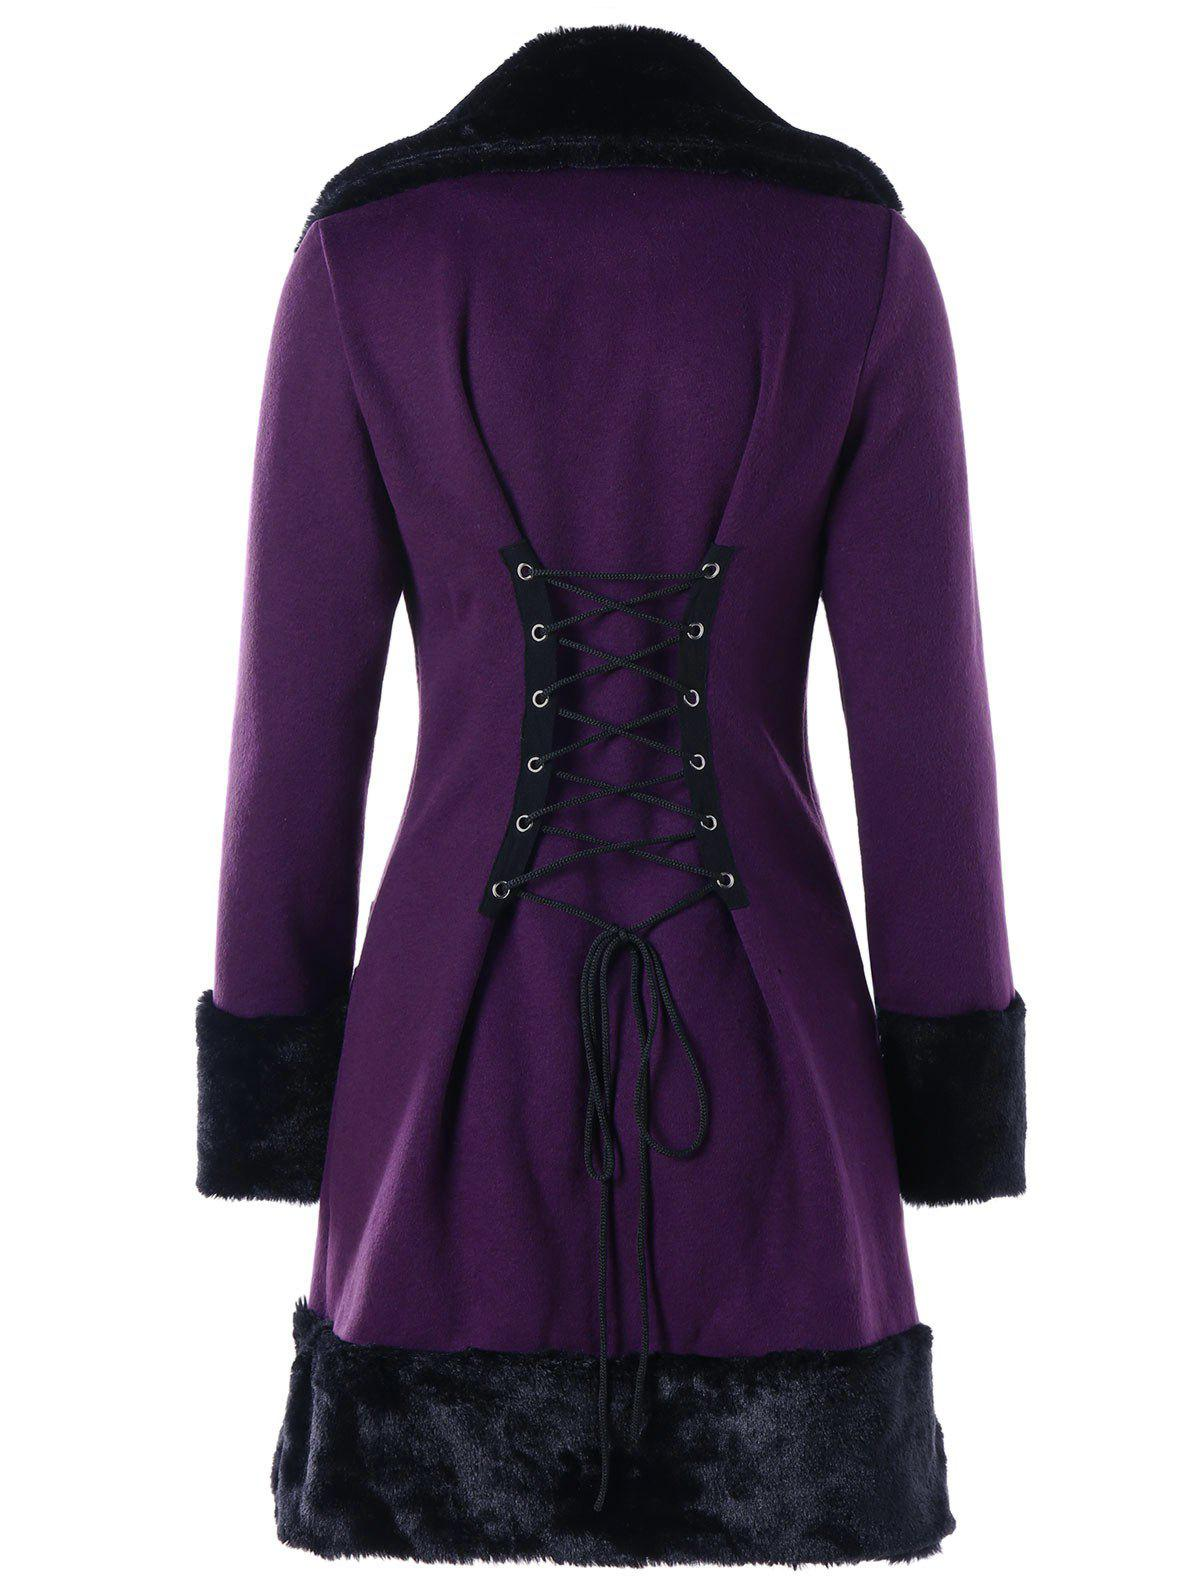 Faux Fur Panel Double Breasted Lace-up CoatWOMEN<br><br>Size: XL; Color: PURPLE; Clothes Type: Others; Material: Cotton Blend,Polyester; Type: Slim; Shirt Length: Long; Sleeve Length: Full; Collar: Convertible Collar; Pattern Type: Others; Style: Fashion; Season: Fall,Winter; Weight: 0.8170kg; Package Contents: 1 x Coat;